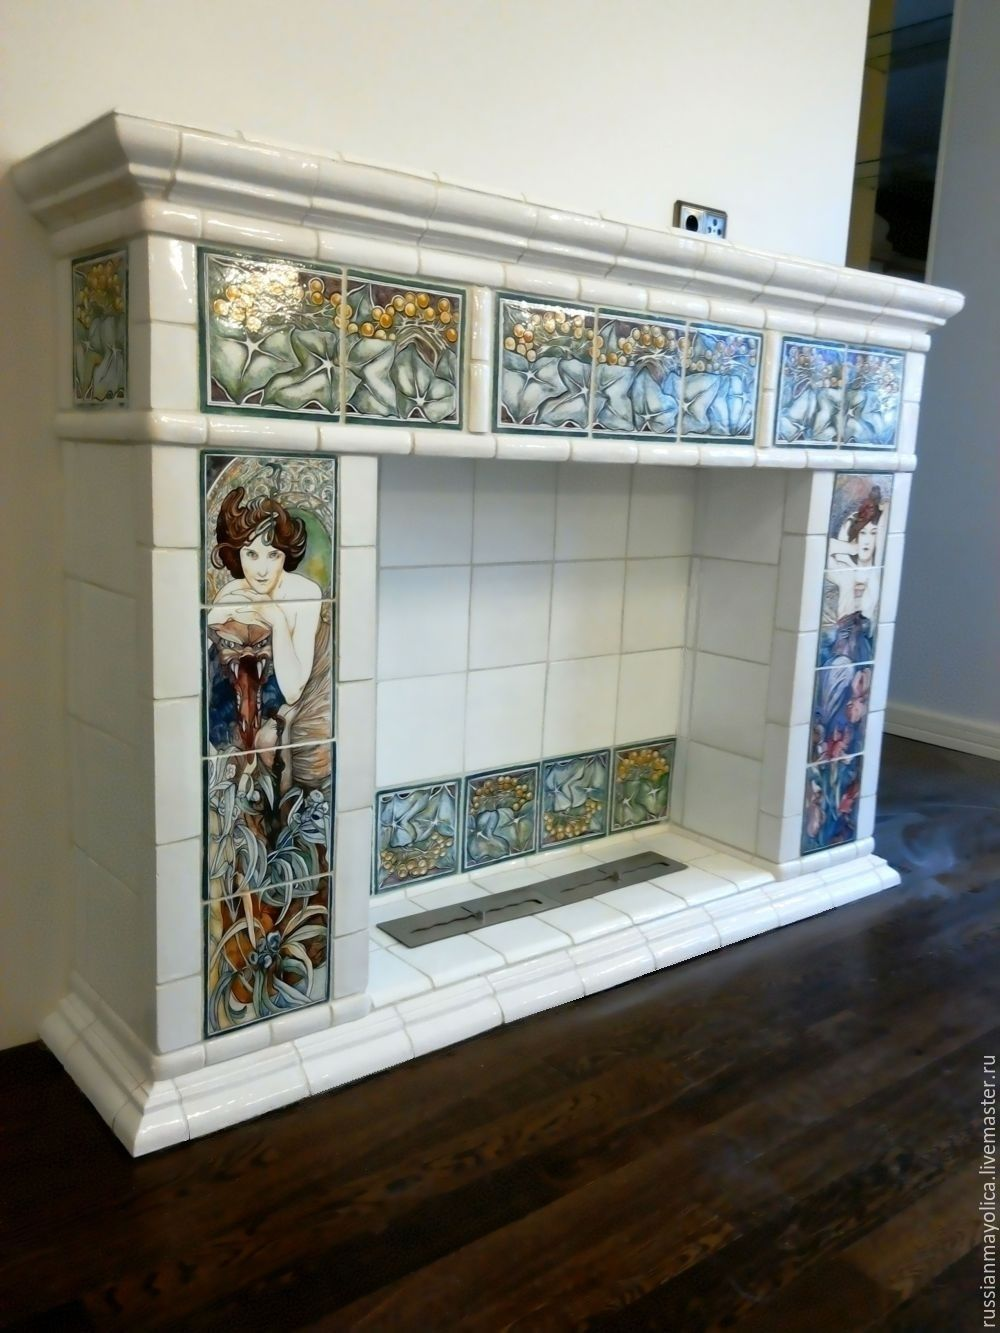 Fireplace in the art Nouveau style, Fireplaces, Moscow,  Фото №1